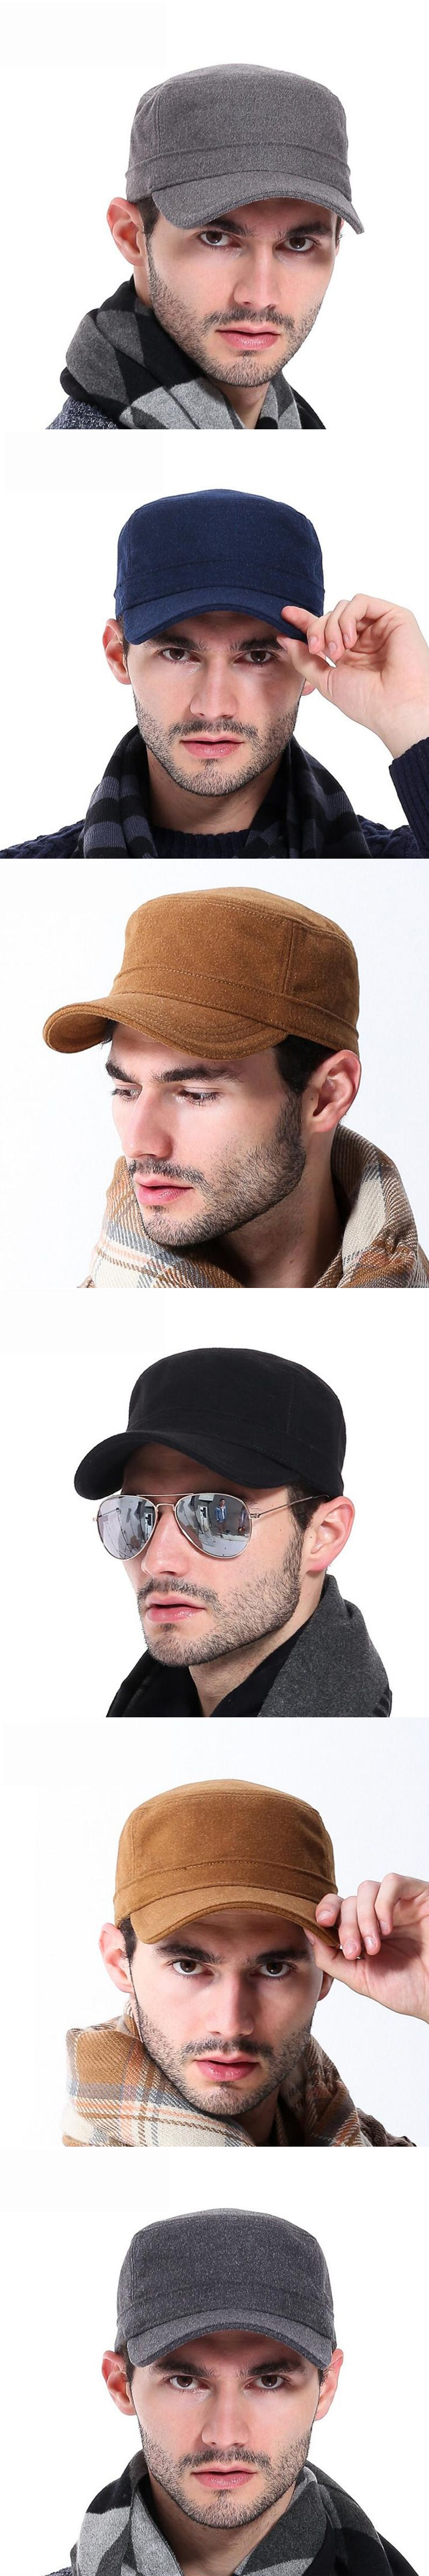 f8d56563899 Outdoor Men Military Hat 2016 New Fashion Casual Adults Autumn Winter  Military Hats Flat Top Imitation